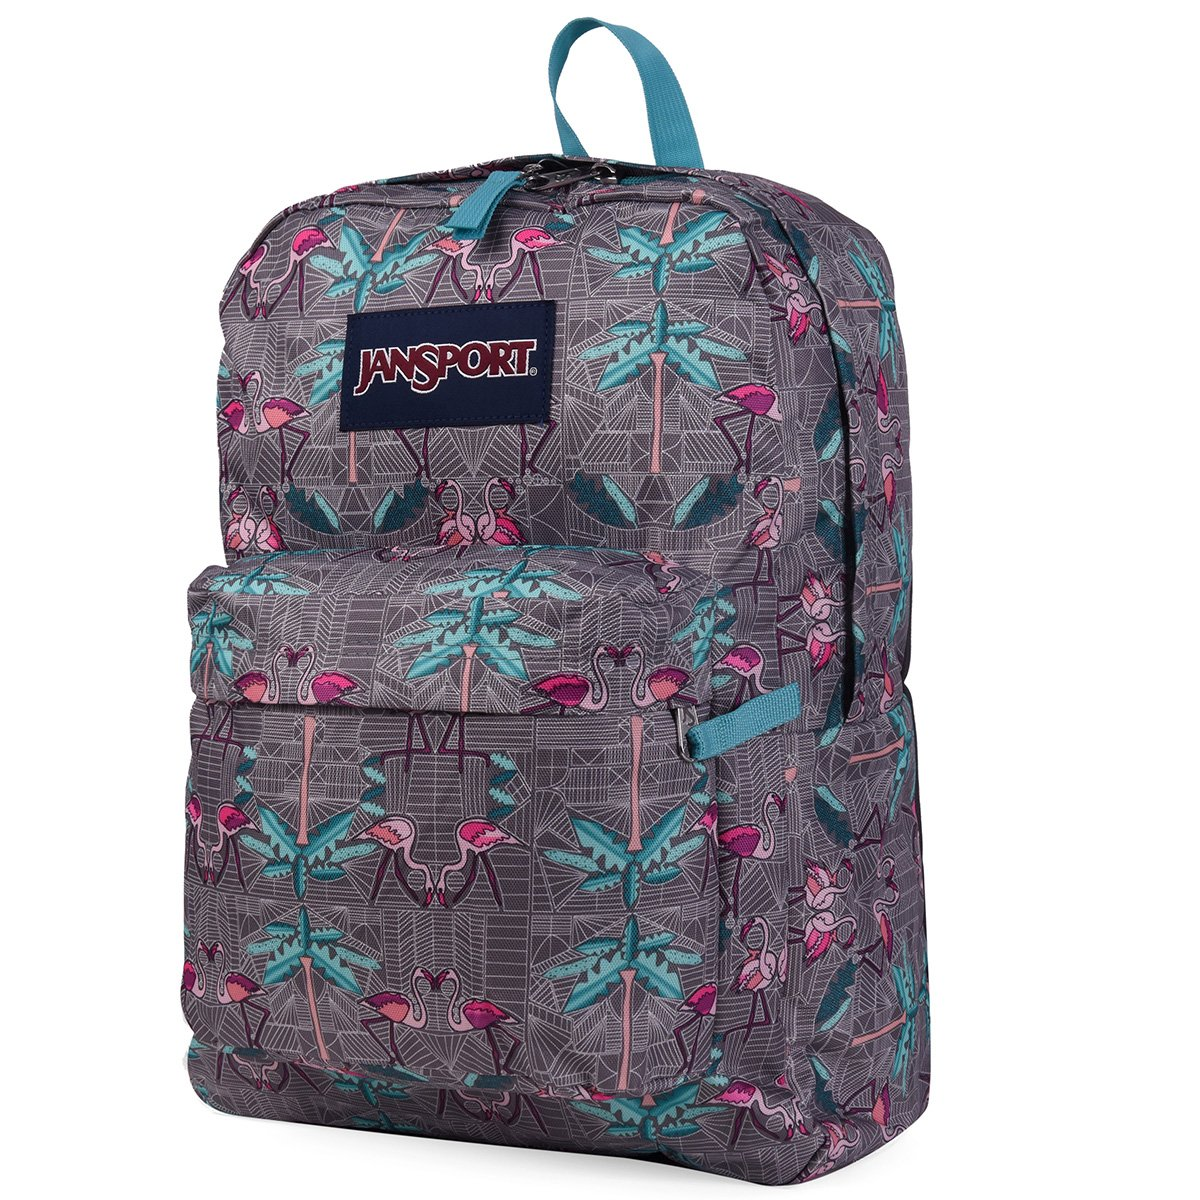 JanSport Unisex Superbreak Flamingo Palace Processing Processing